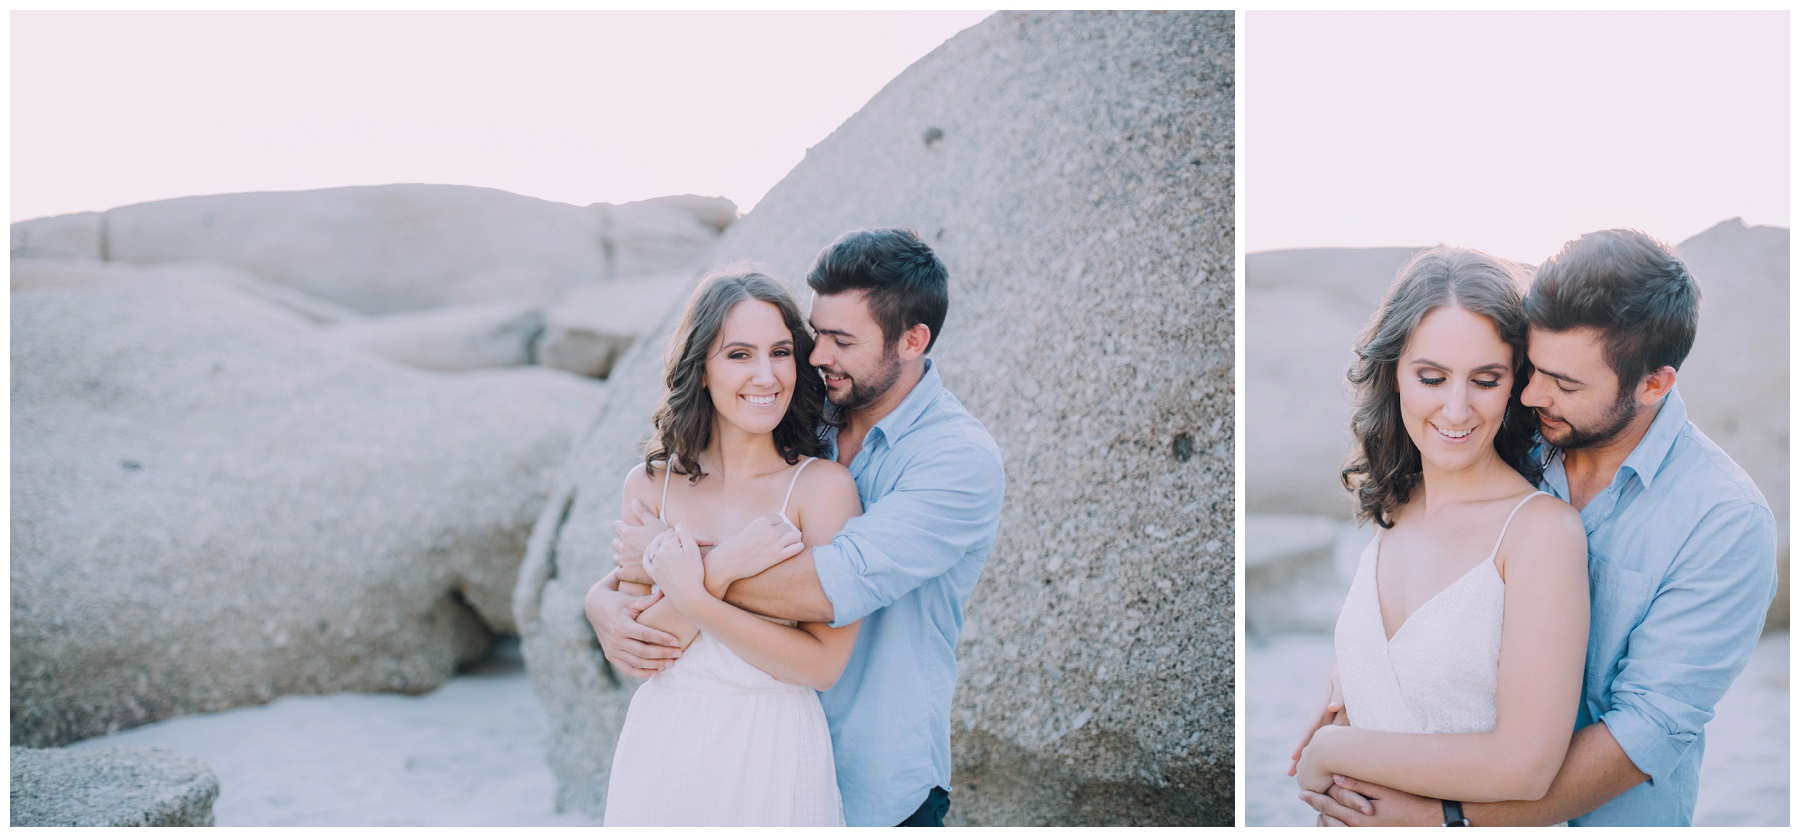 Ronel Kruger Cape Town Wedding and Lifestyle Photographer_8472.jpg